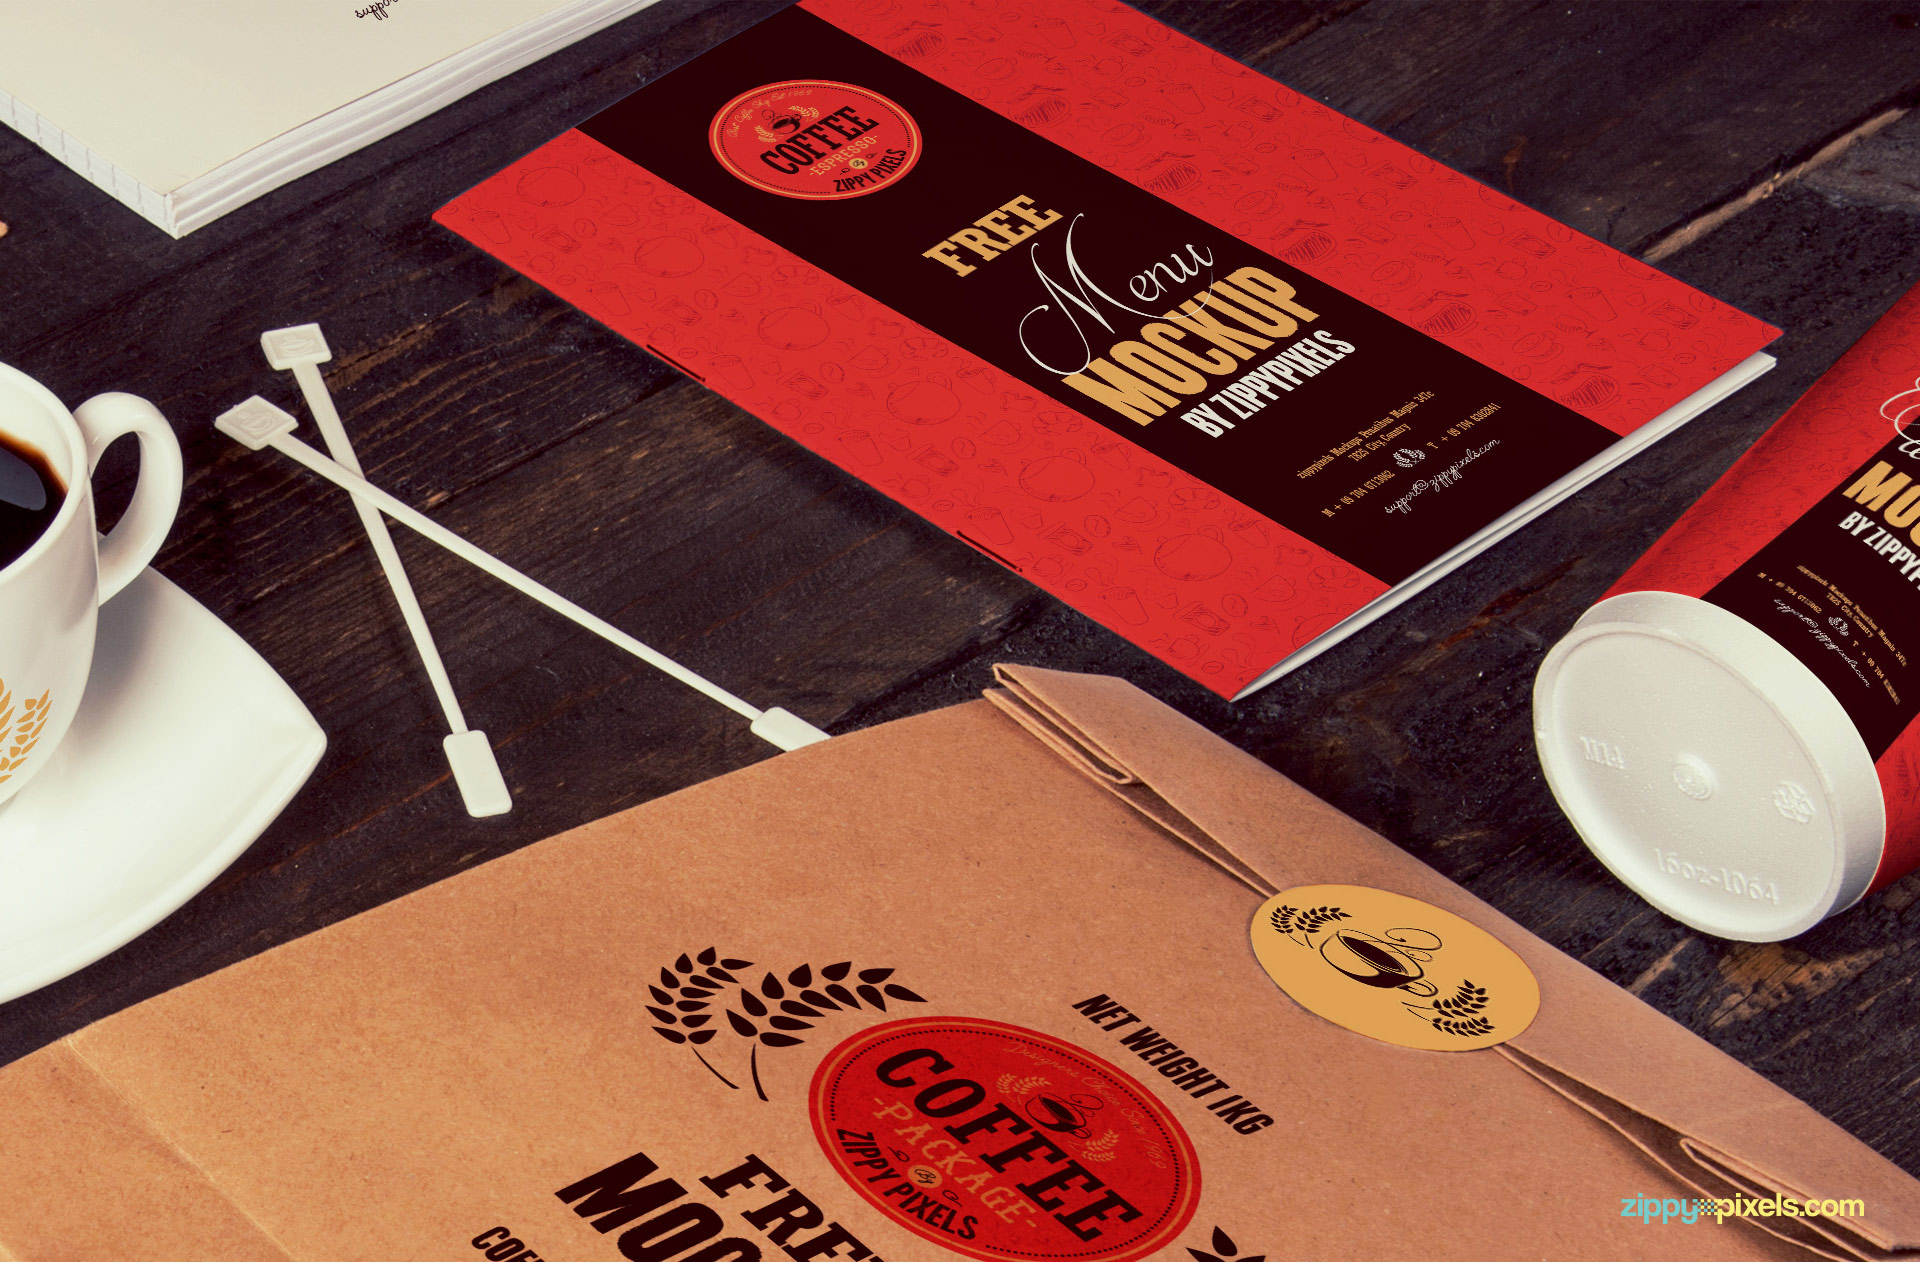 You can customize the menu card and take-away bag as per your liking.